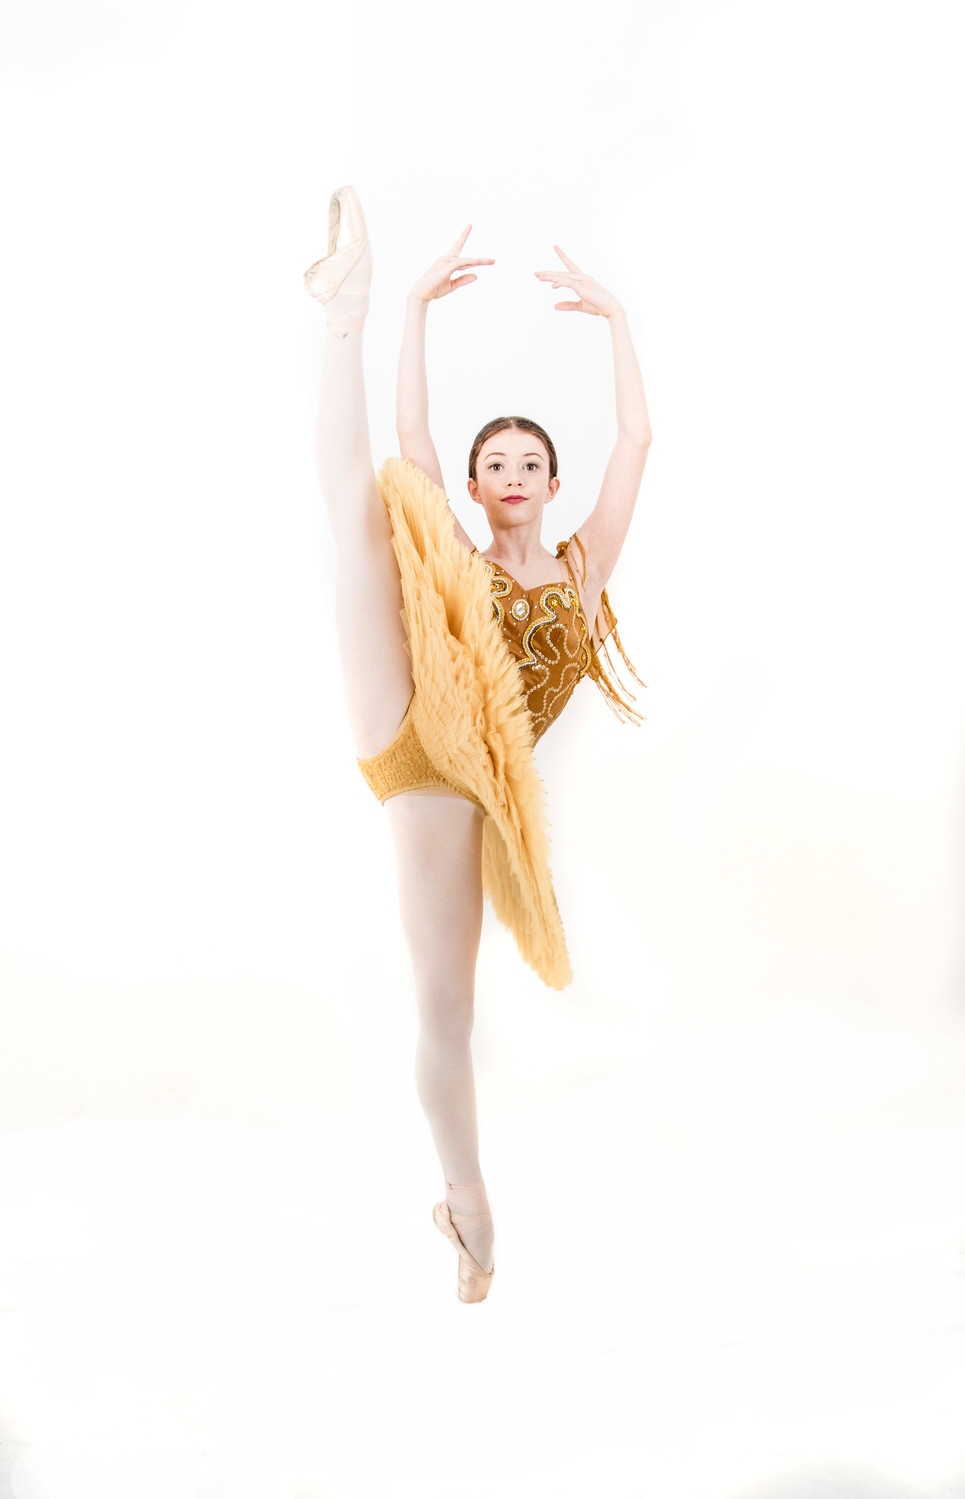 Kieryn Brophy, a 13-year-old student from Ponte Vedra Ballet & Dance Company, recently performed at Hermitage Theatre in St. Petersburg, Russia.